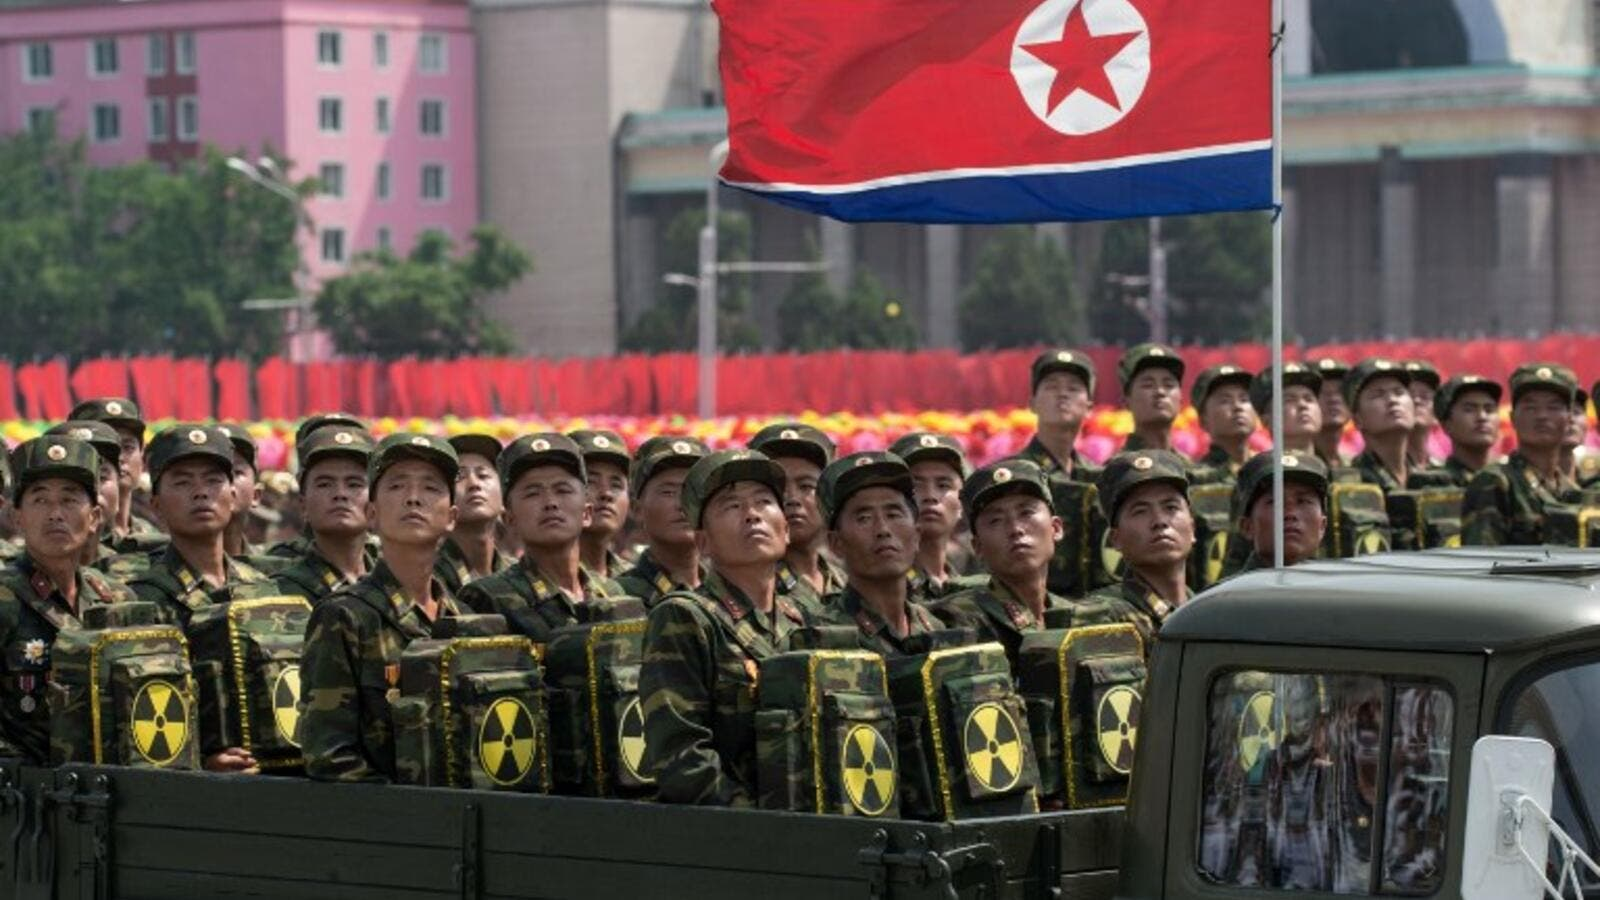 In this photo taken on July 27, 2013, Korean People's Army (KPA) soldiers carrying packs marked with a radioactive symbol take part in a military parade in Pyongyang (Ed Jones/AFP)